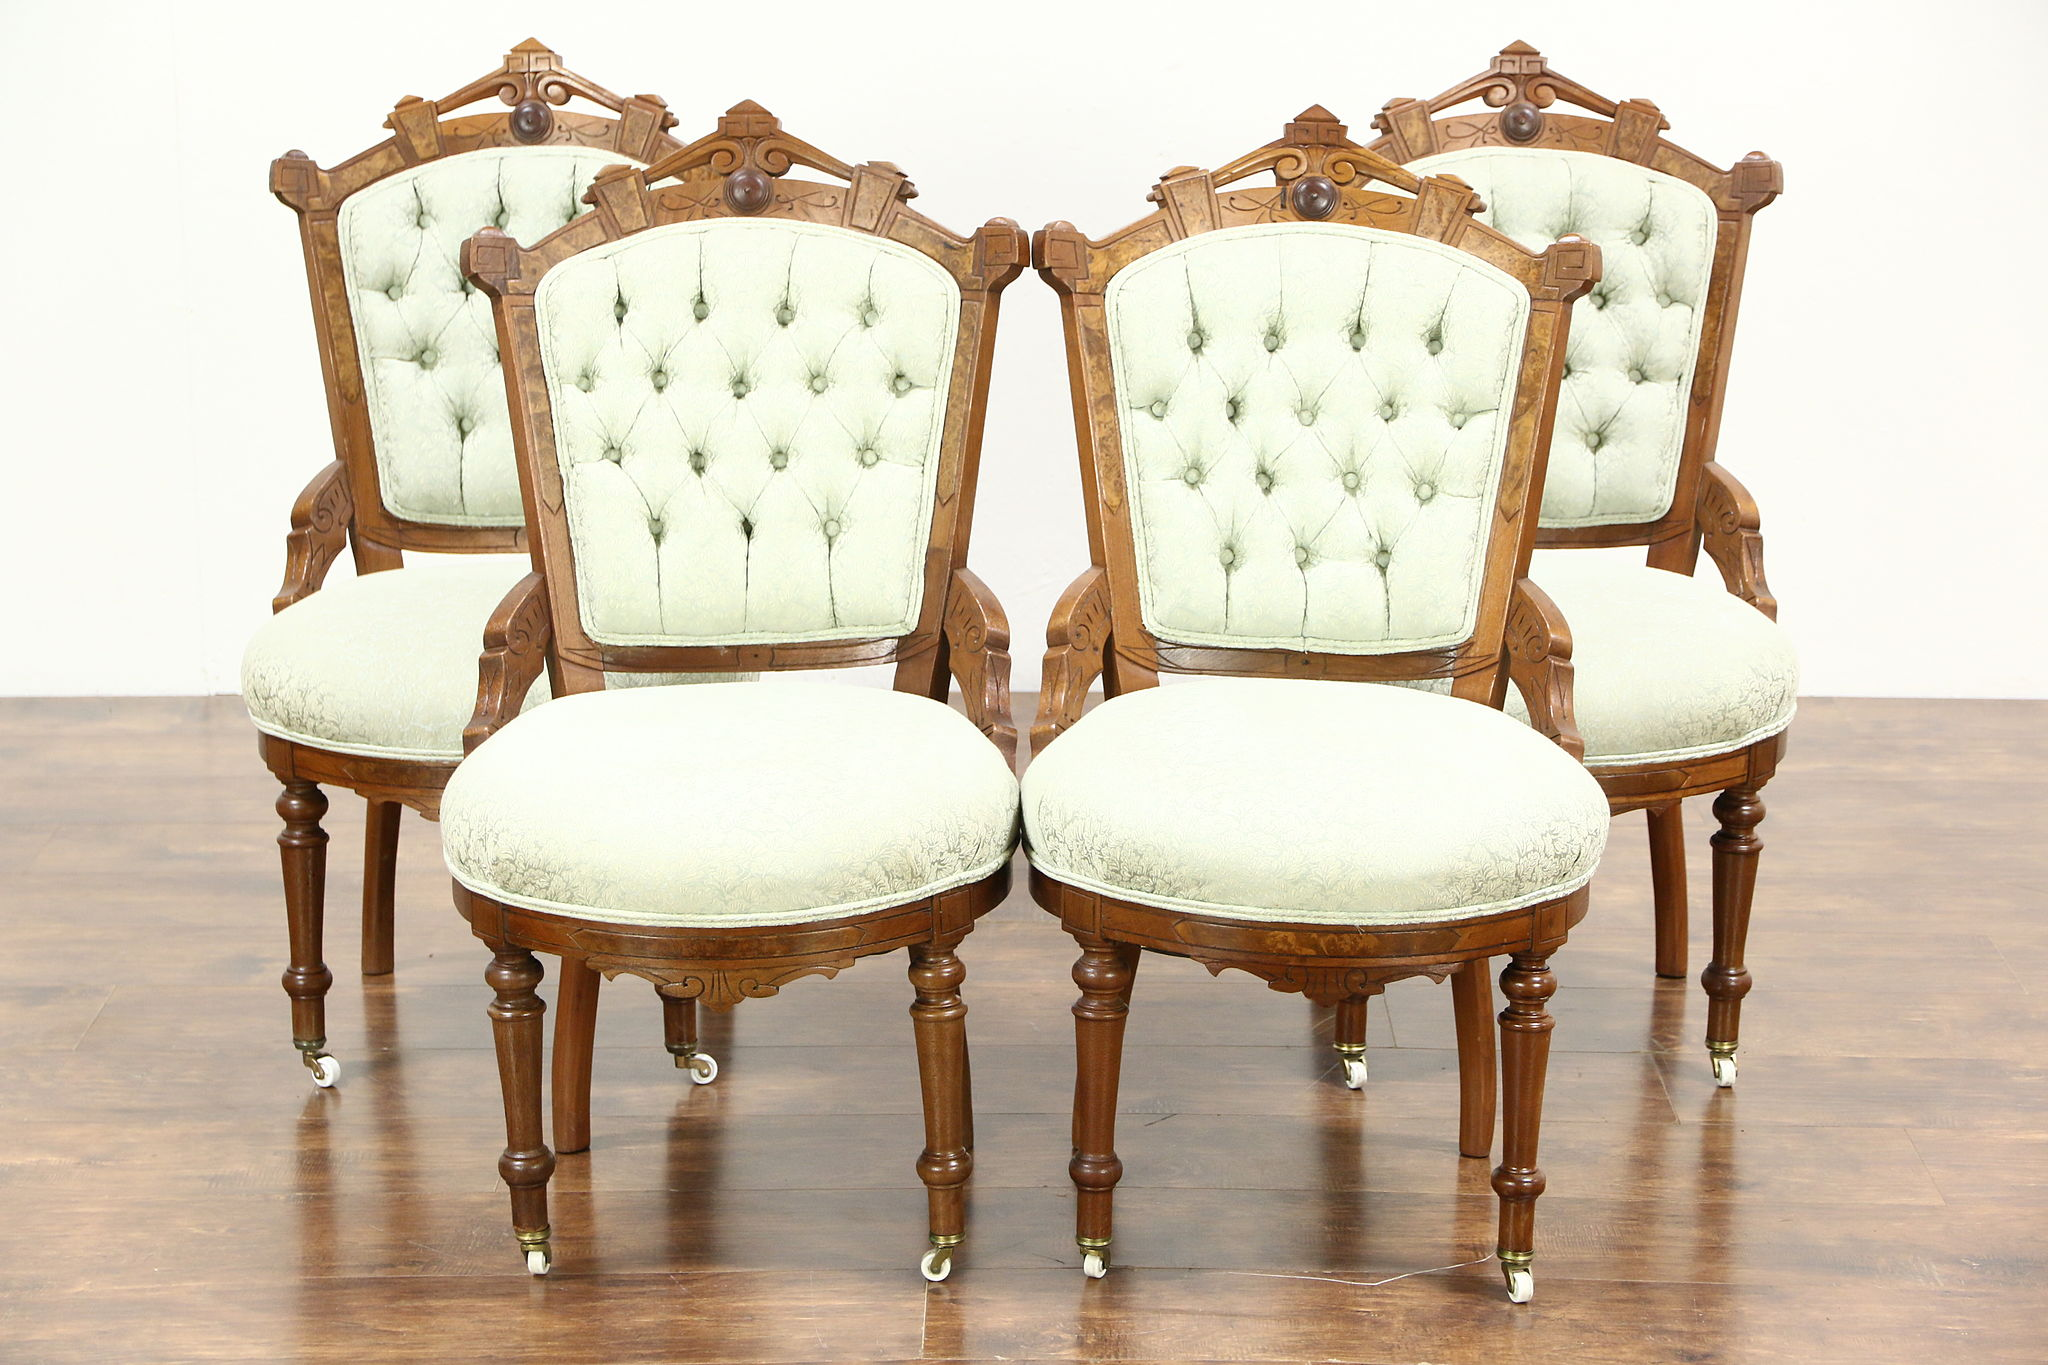 Sold Sofas, Benches and Chairs